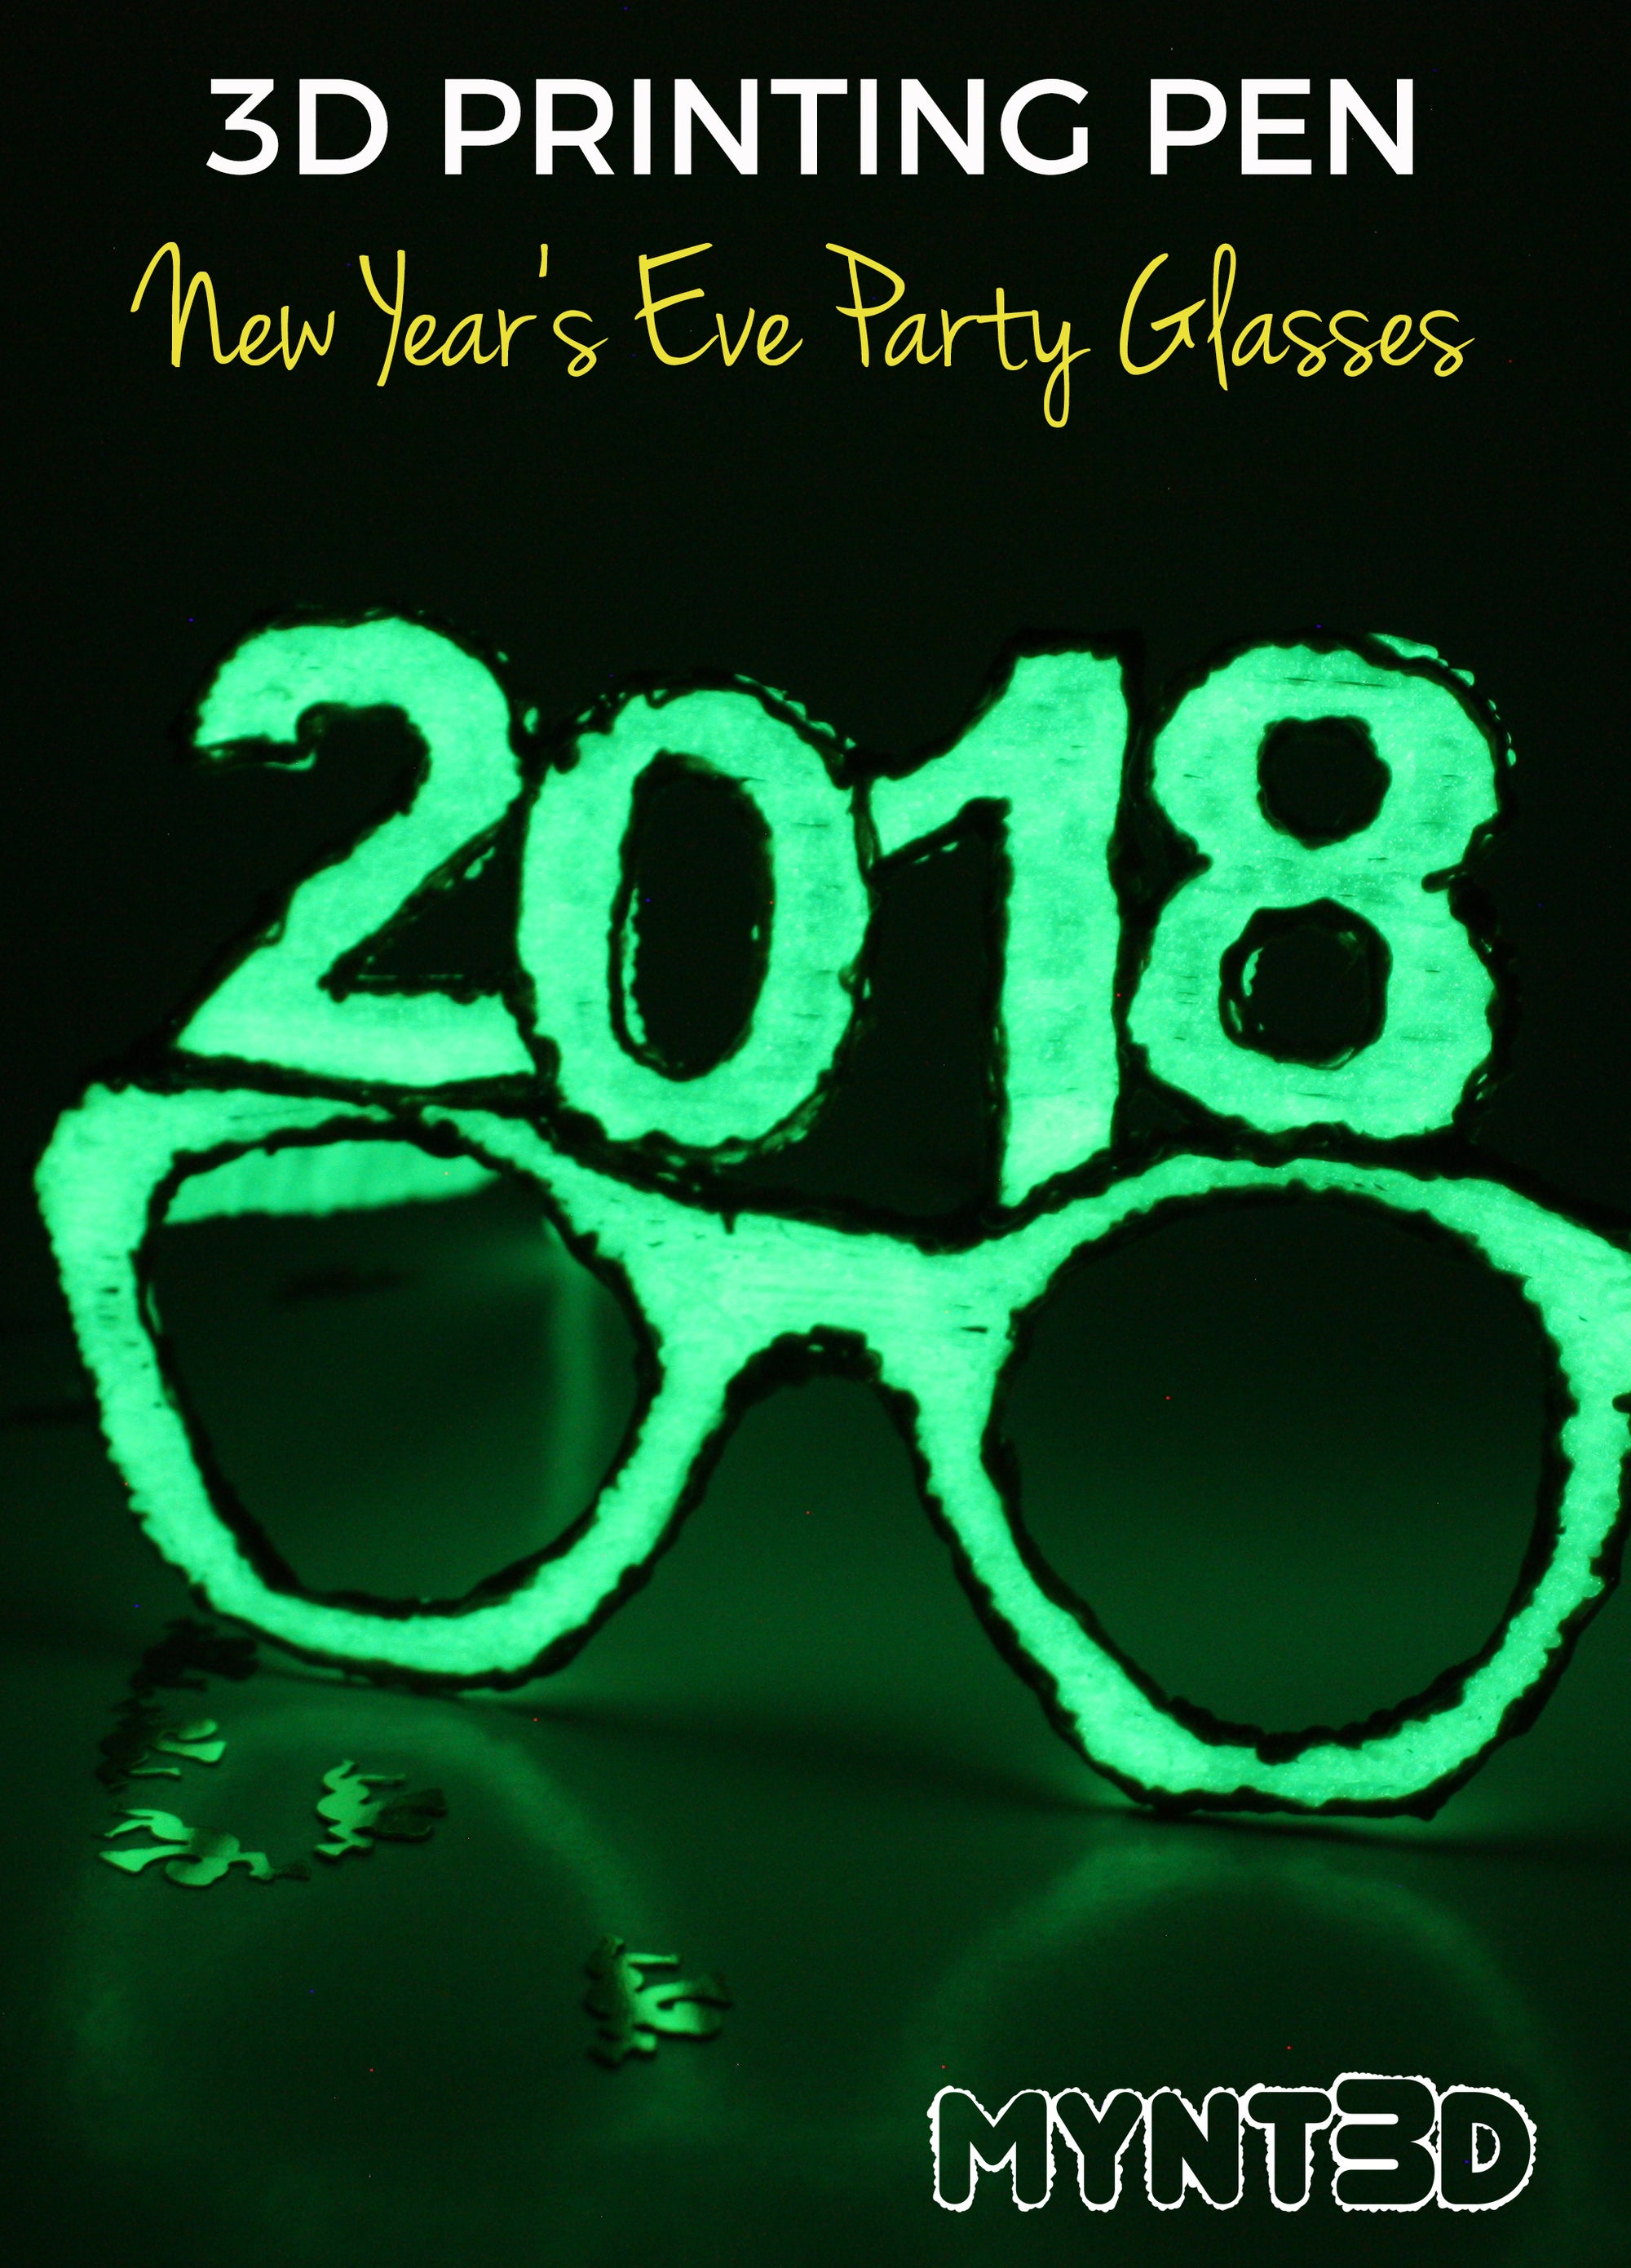 3D Pen Project New Year's Eve Party Glasses